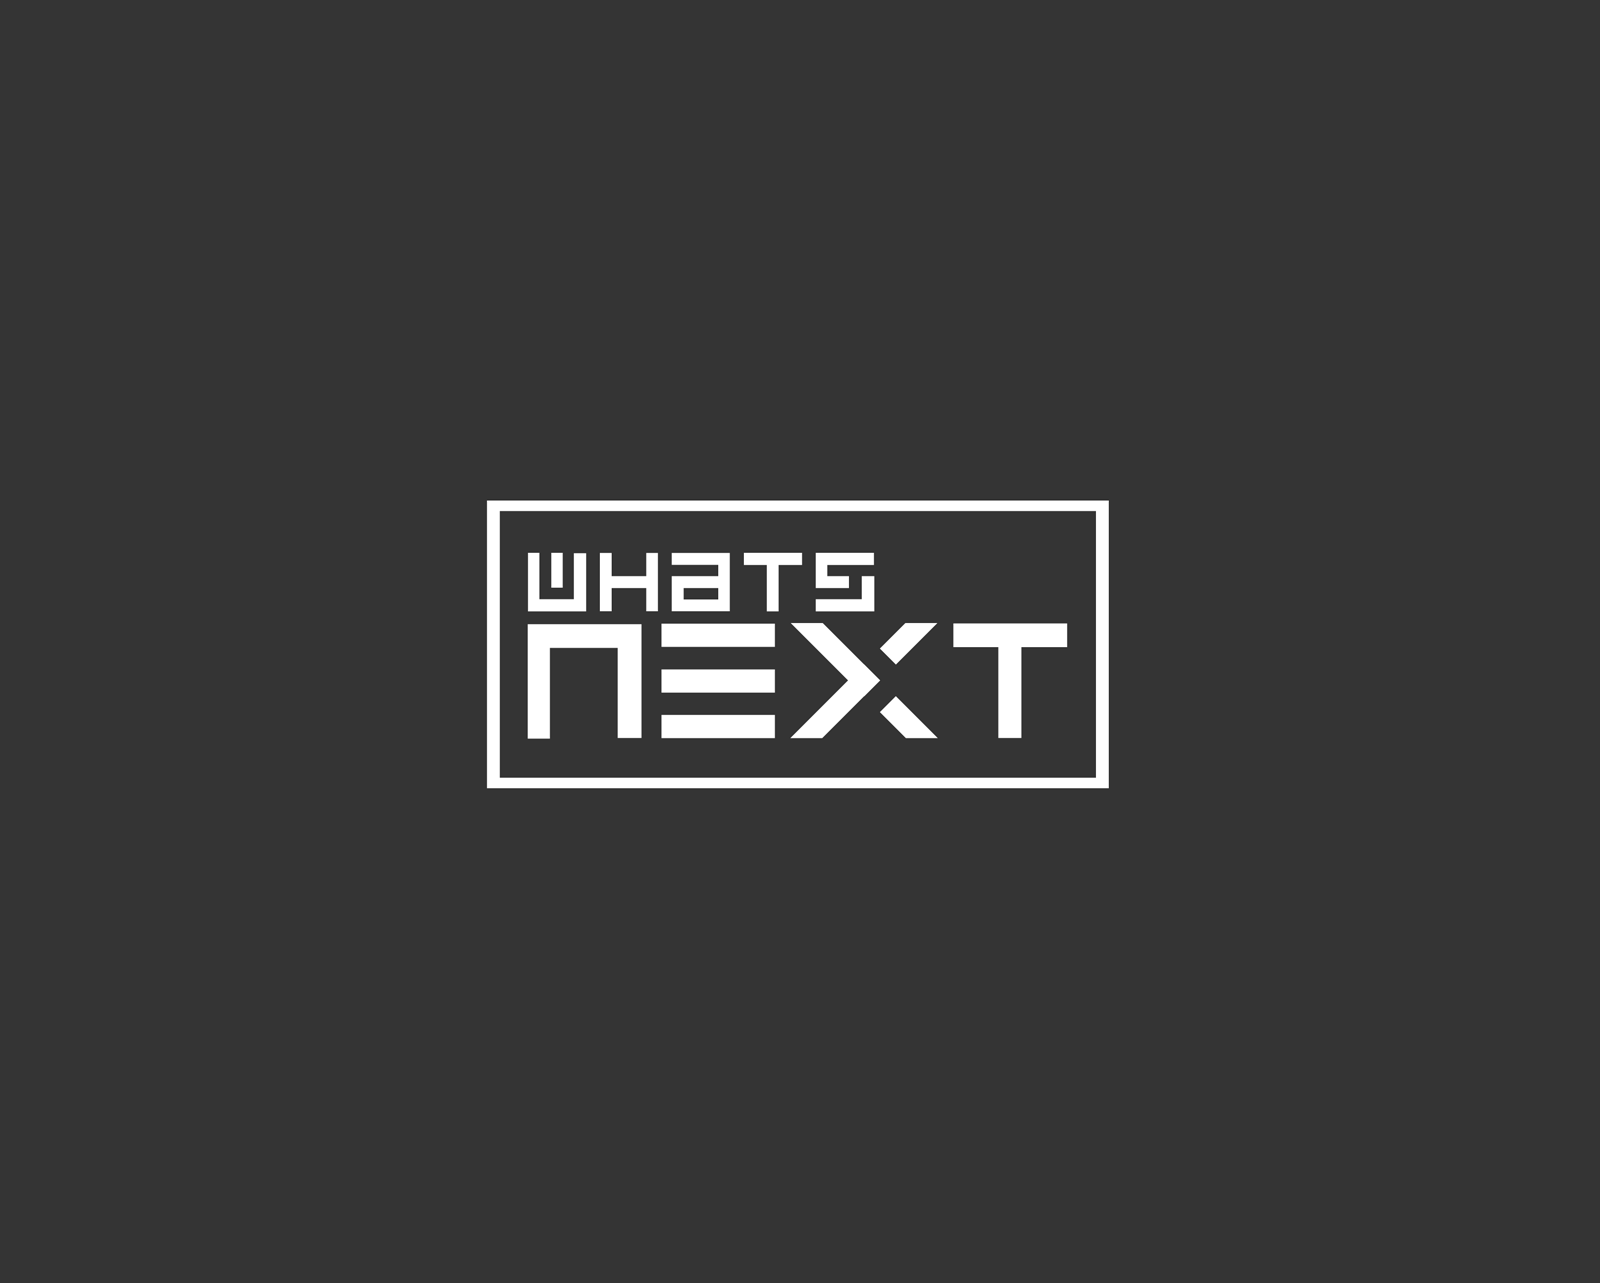 whats-next-fest-bwlogo.png